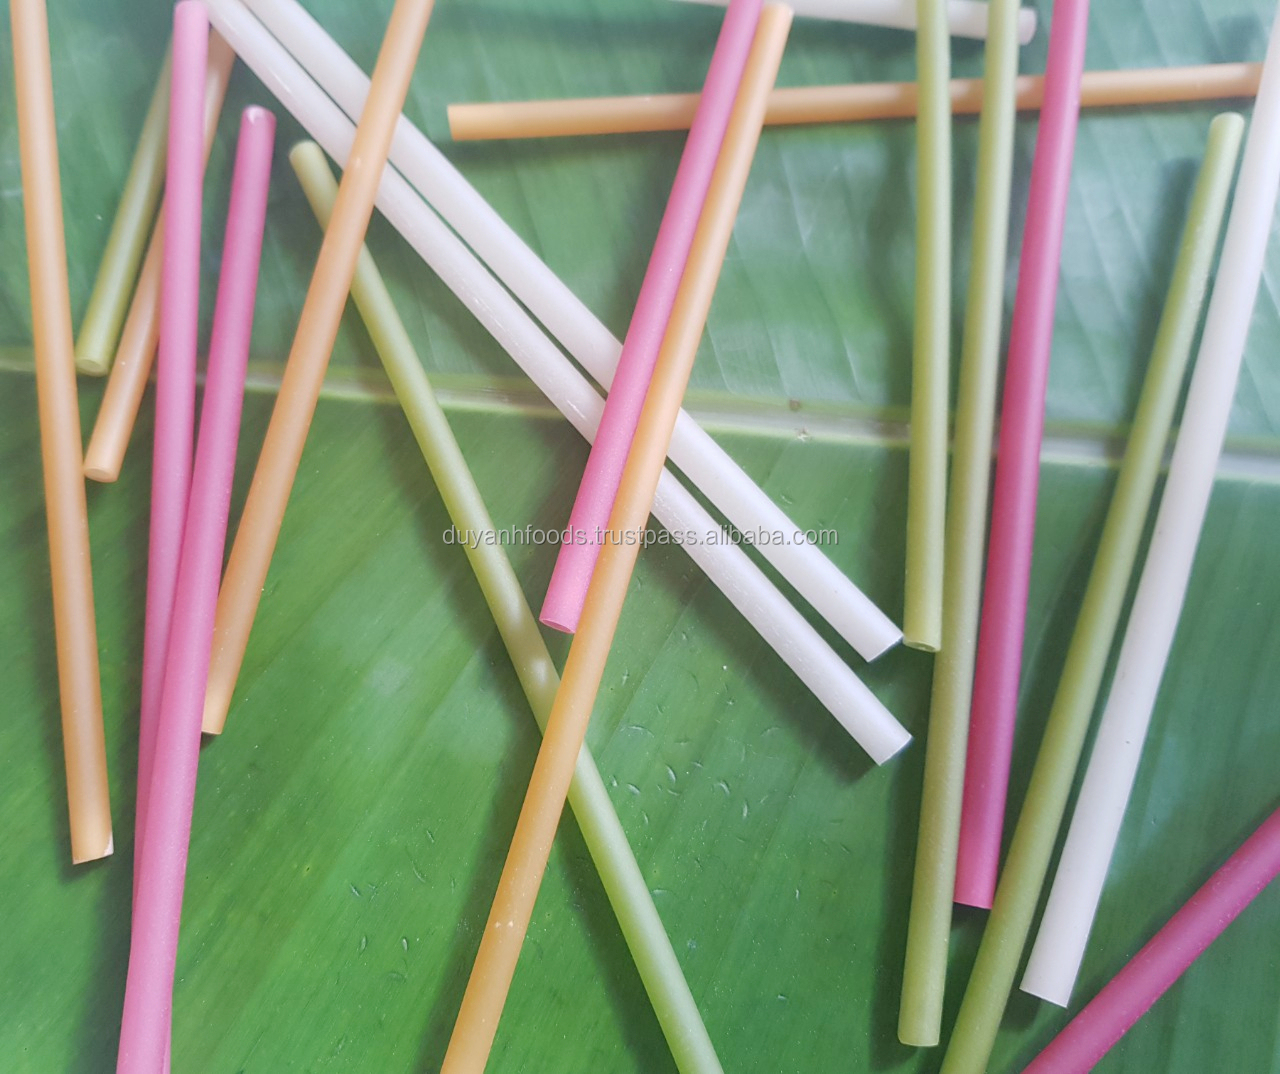 RICE STRAW - ECO FRIENDLY ENVIRONMENT STRAW MADE FROM 100% RICE IN VIET NAM